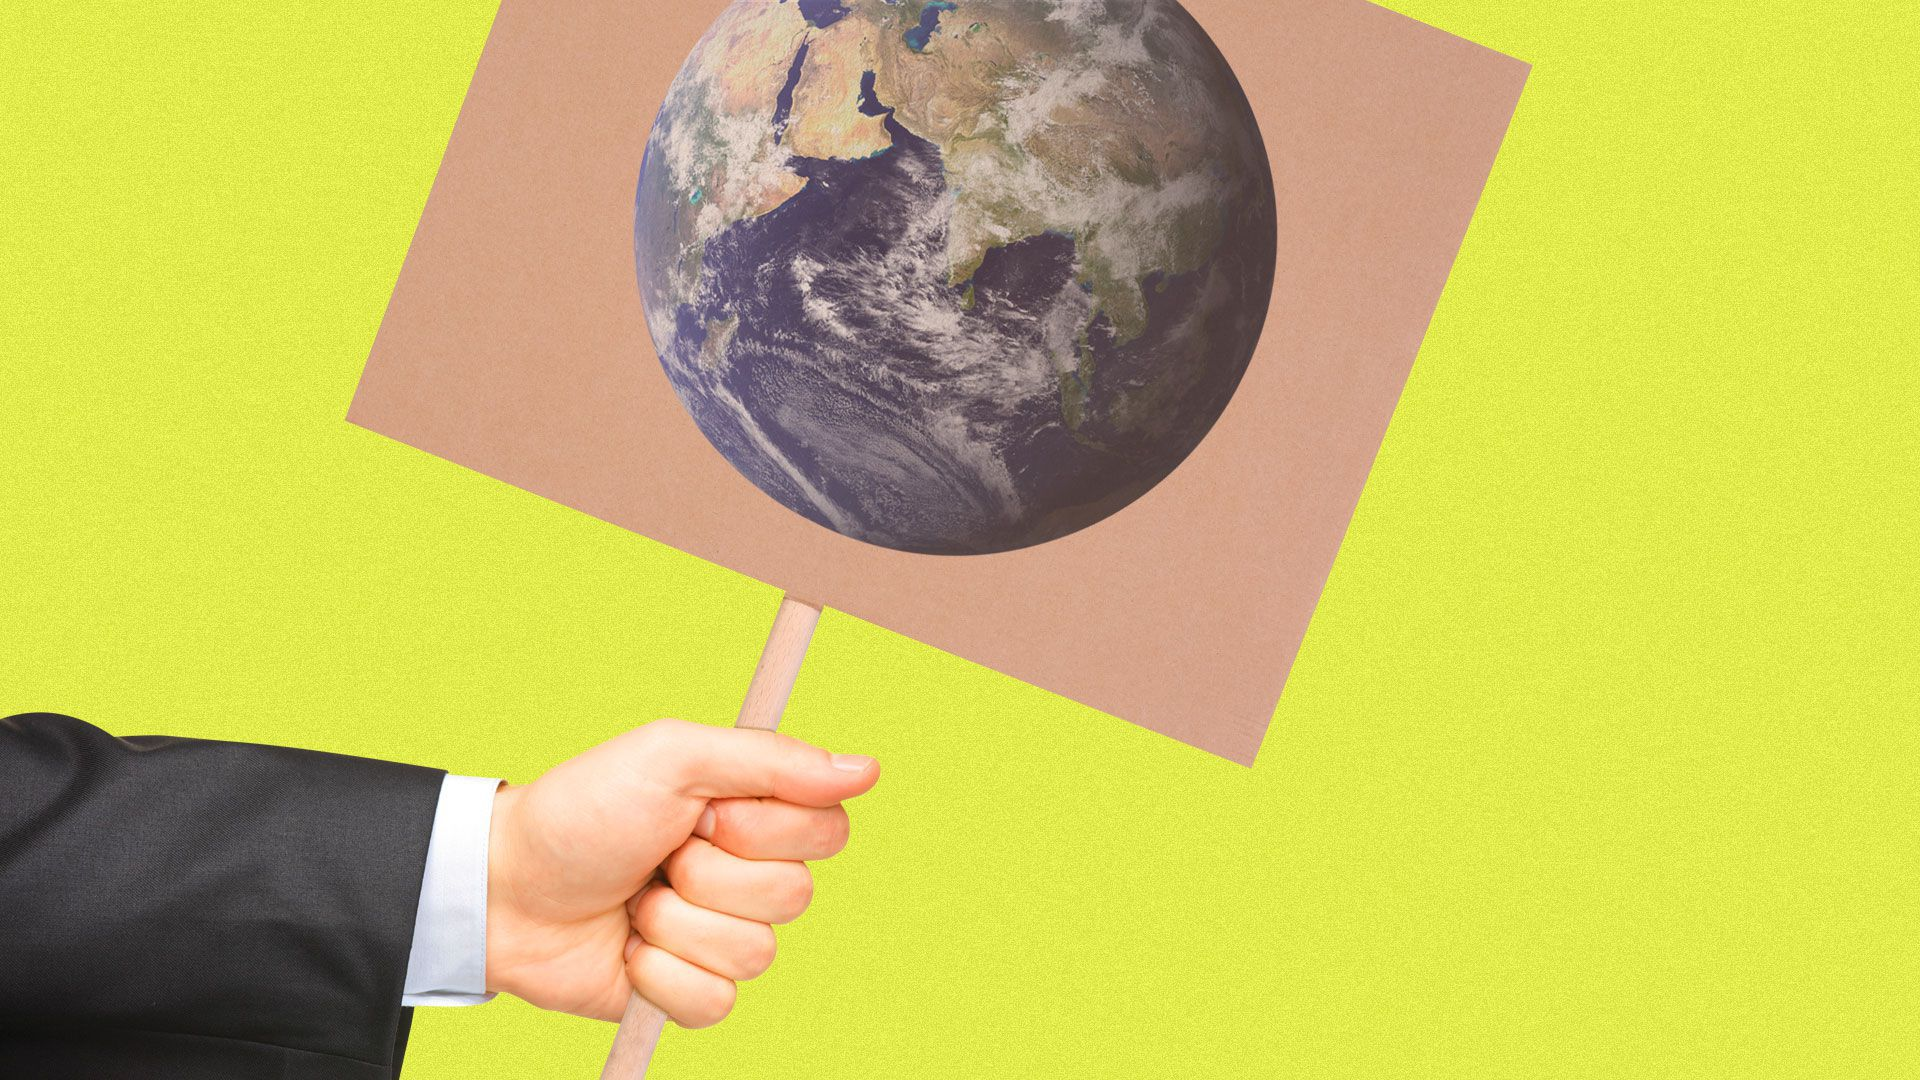 Illustration of suited hand holding a climate protest sign.